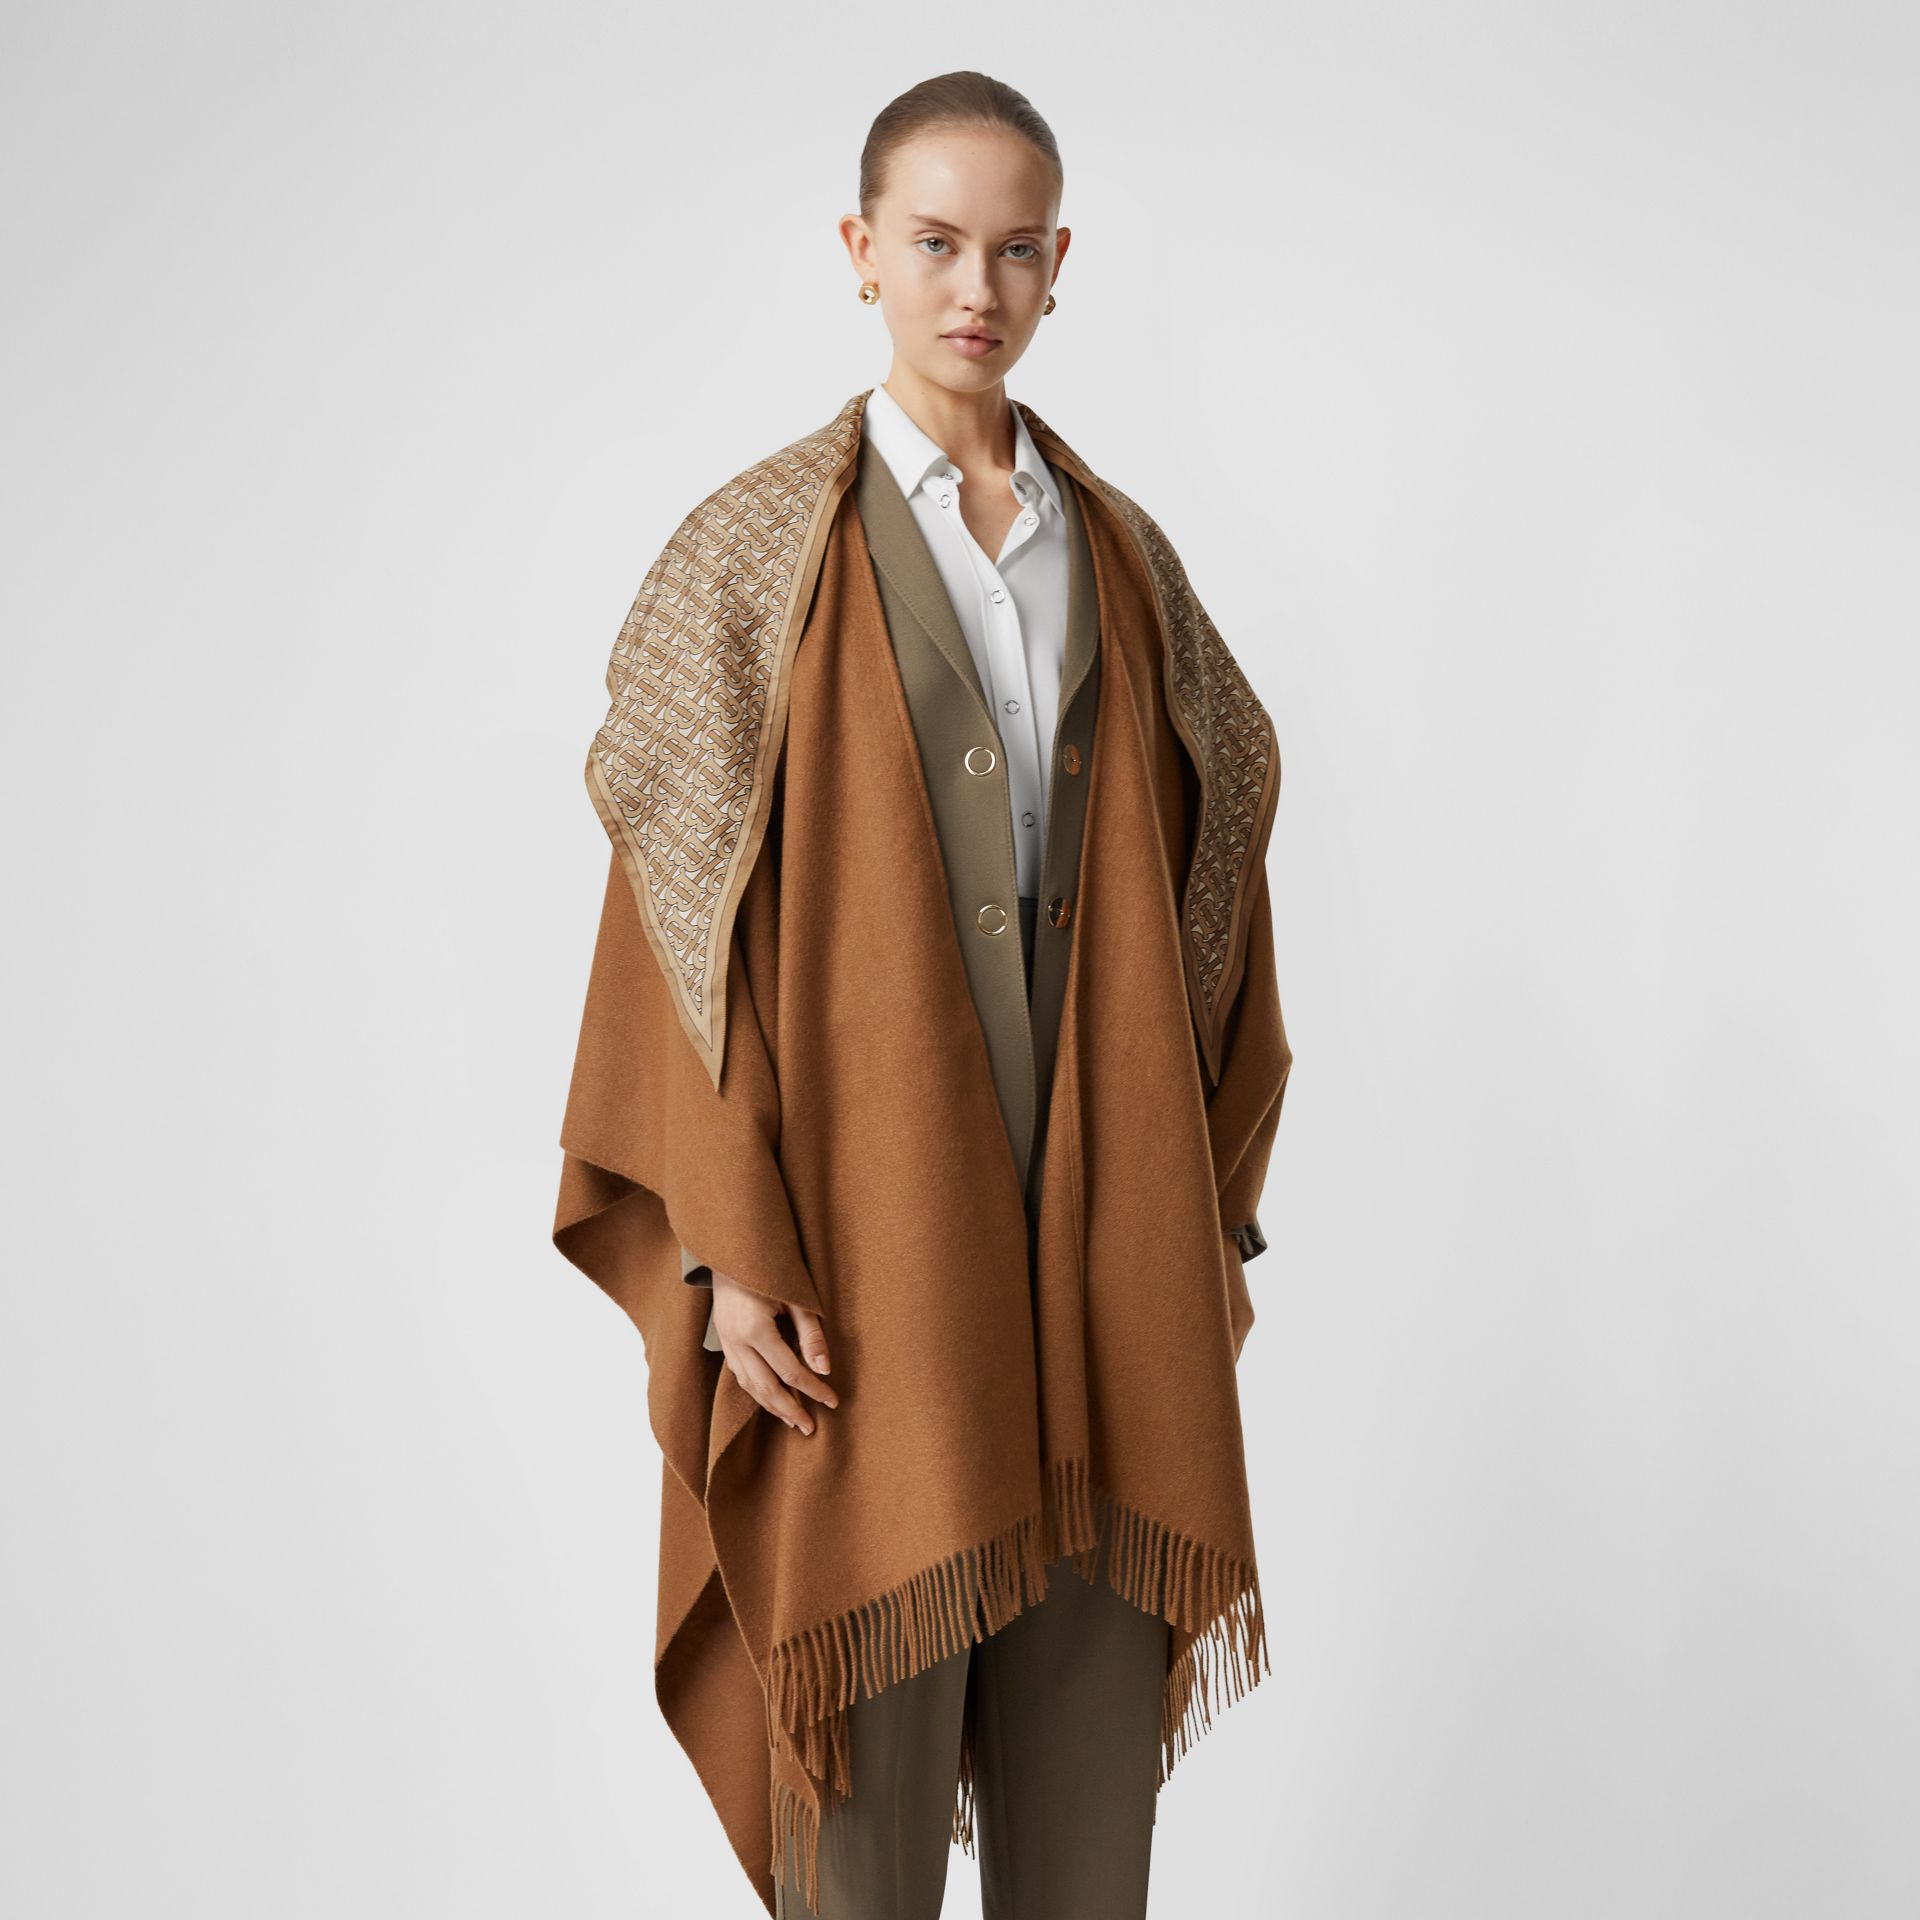 Detachable Monogram Print Scarf Cashmere Cape in Fern - Women | Burberry Australia - gallery image 6